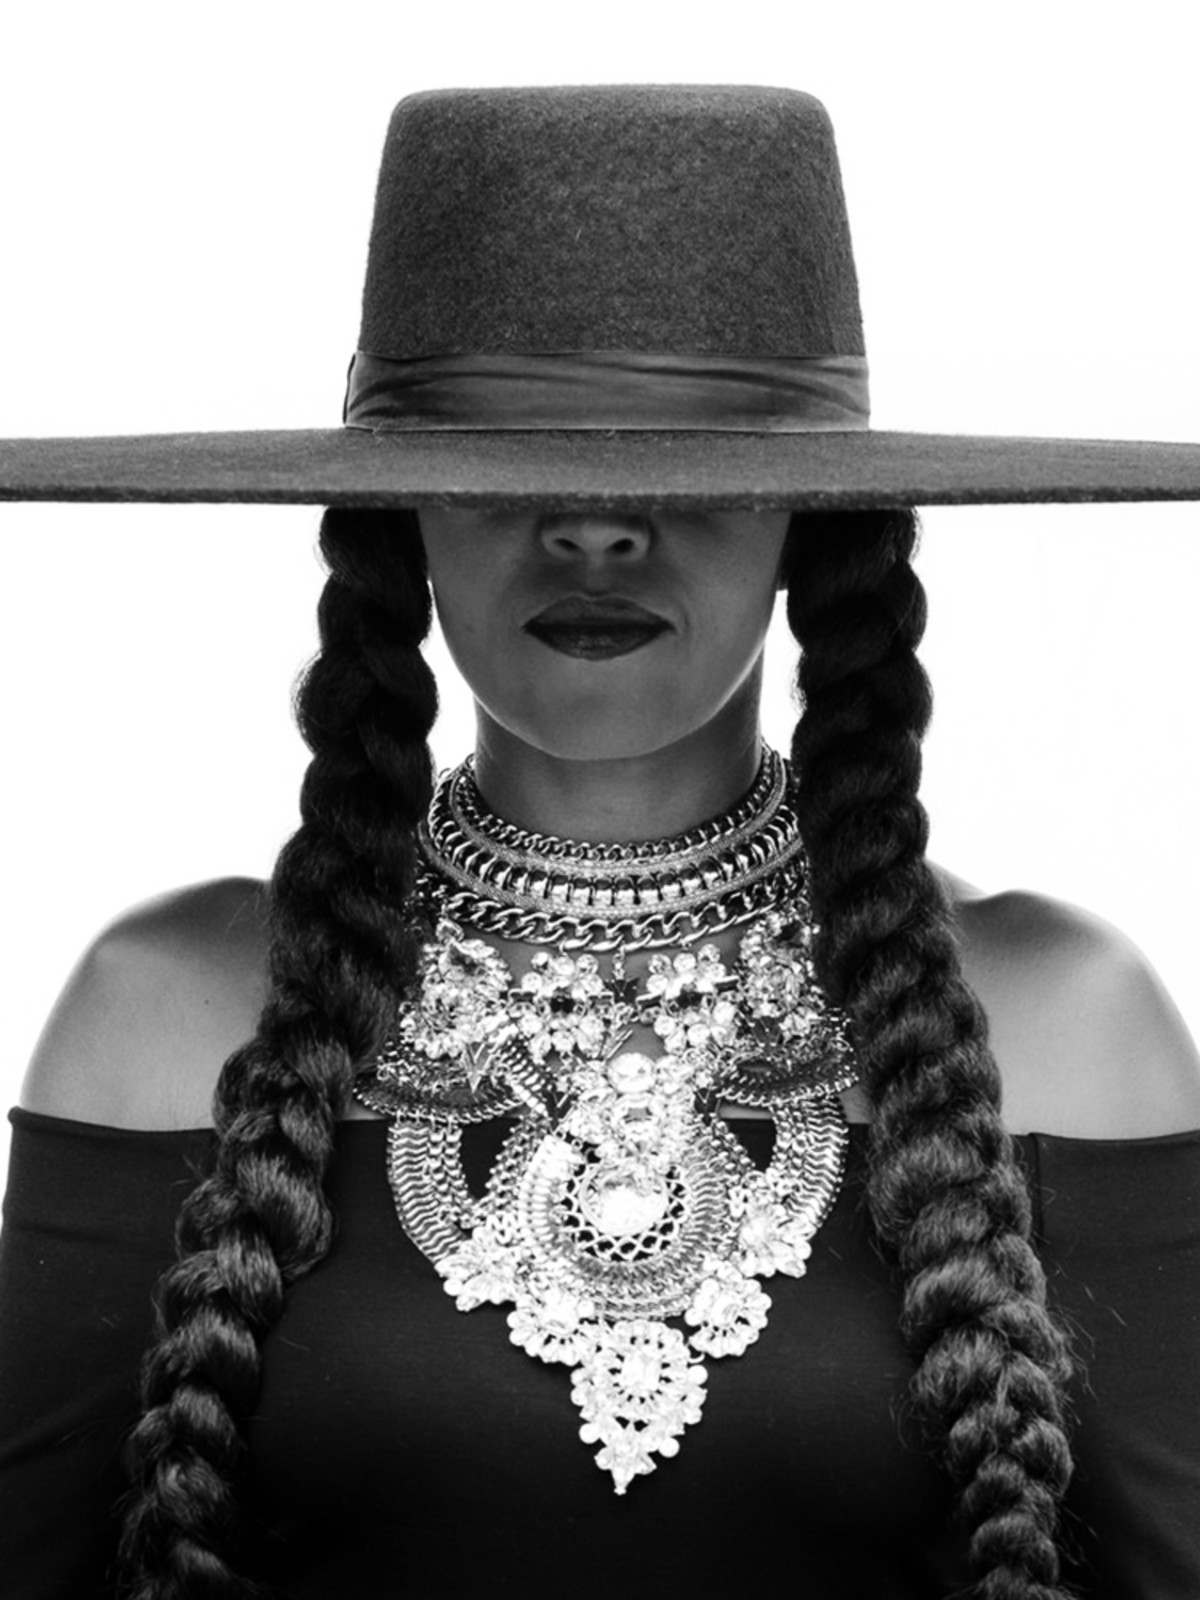 Michelle Obama as Beyonce for Hurricane Relief funds